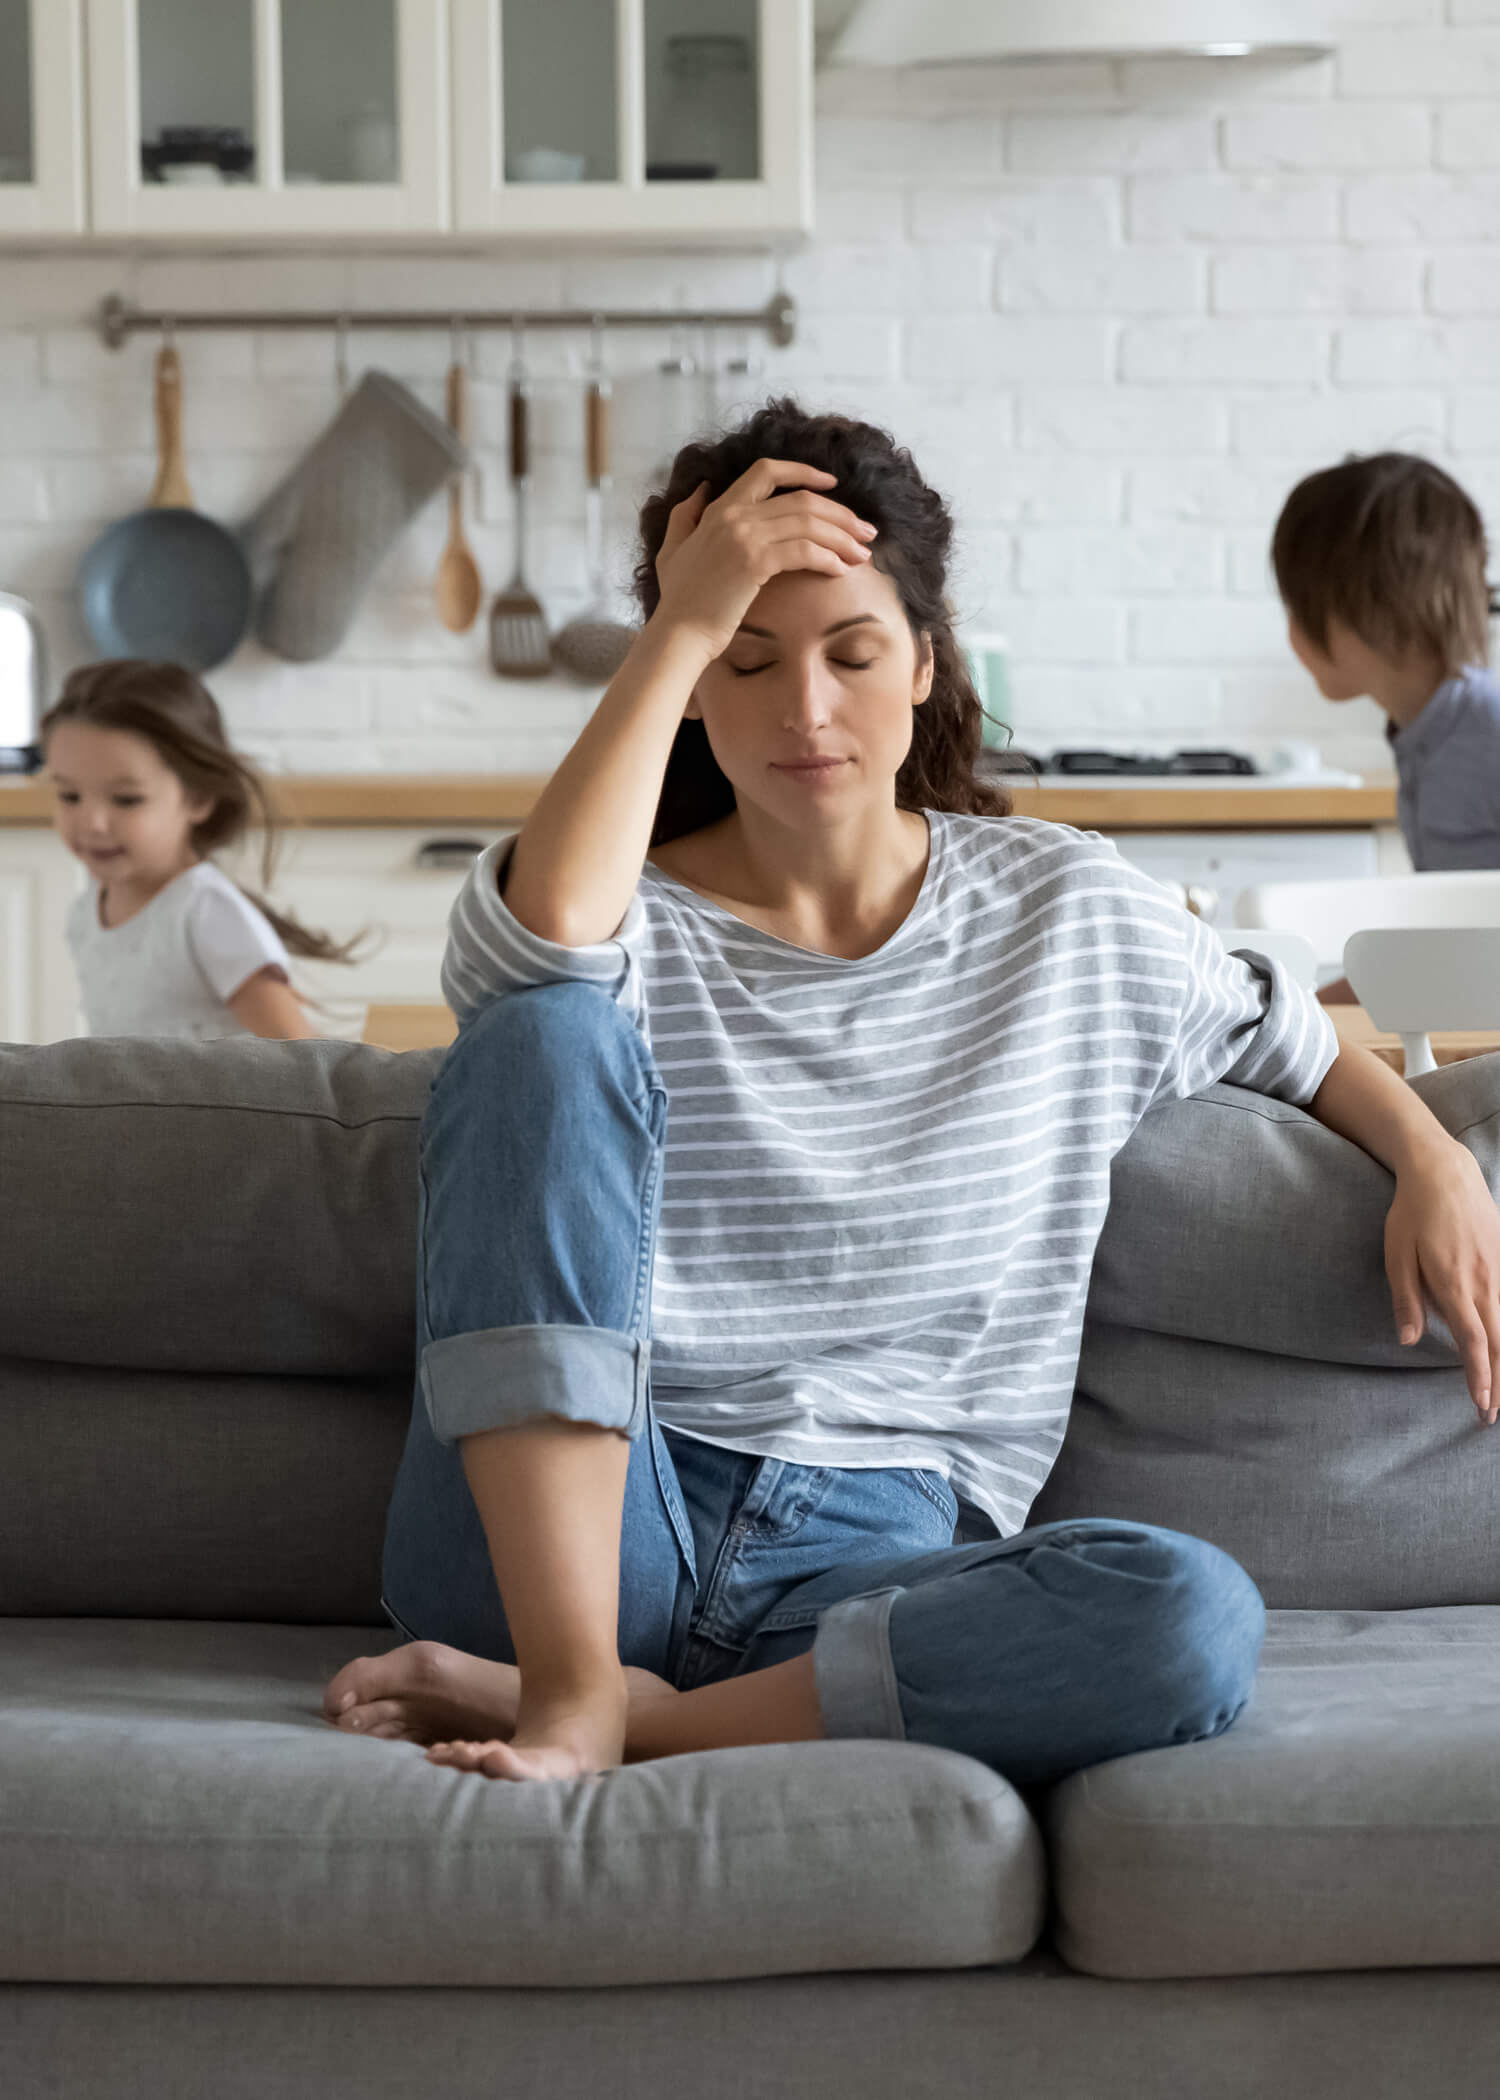 Woman holding head in distress as kids play behind her. If you're feeling anxiety from this past year or have dealt with it for other reasons, an anxiety therapist can help. Try getting support for postpartum anxiety, health anxiety, and more. Begin anxiety treatment in Riverside, Il.